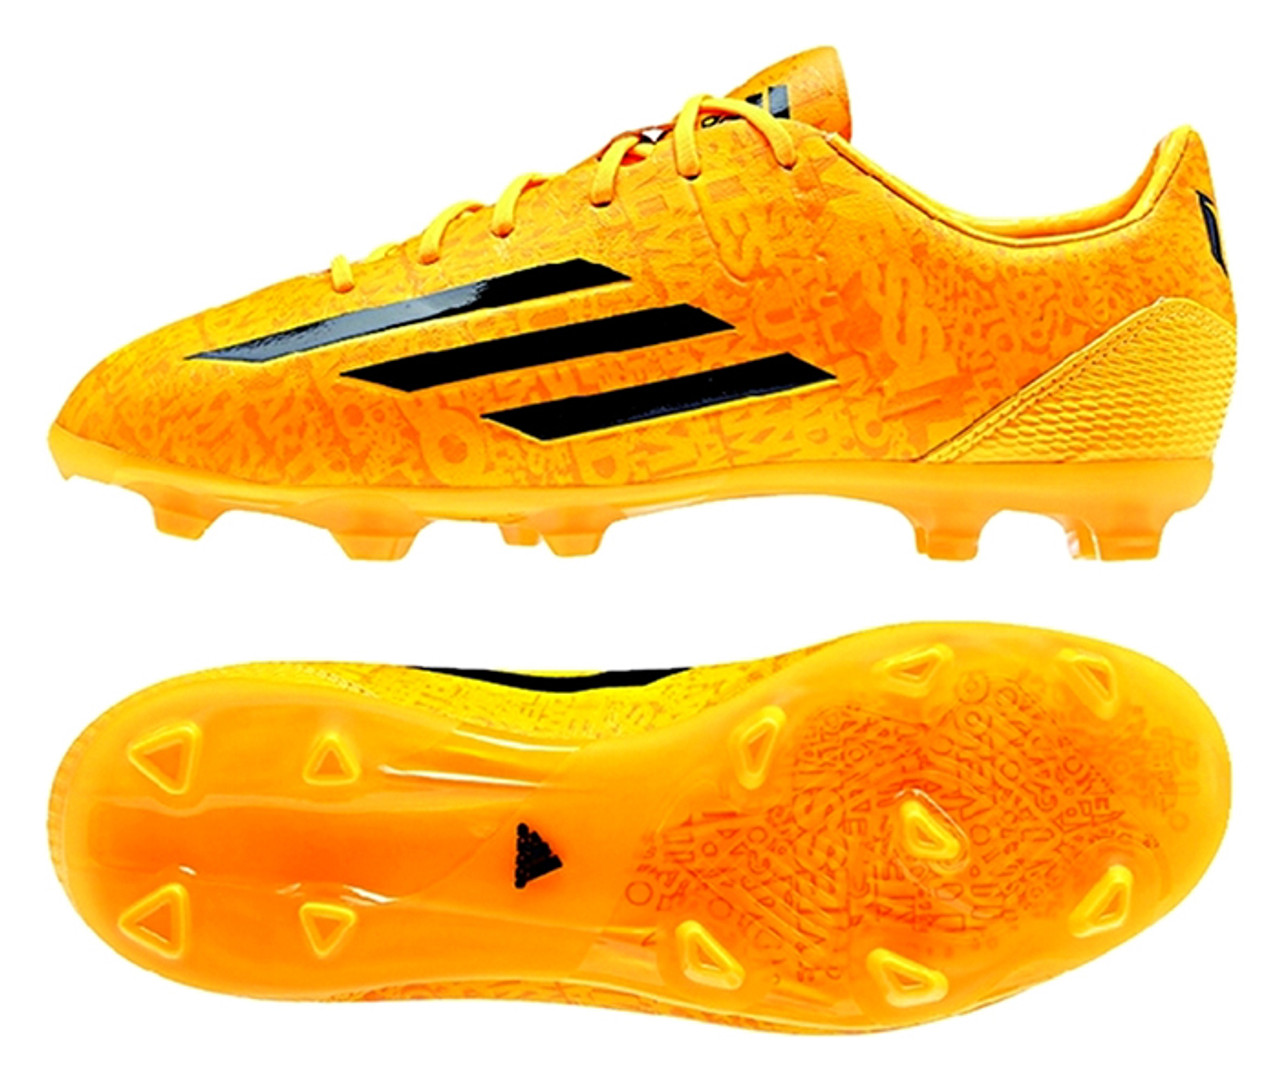 official photos ed15e 4f4ed ADIDAS F50 ADIZERO FG MESSI GOLD firm ground soccer cleats